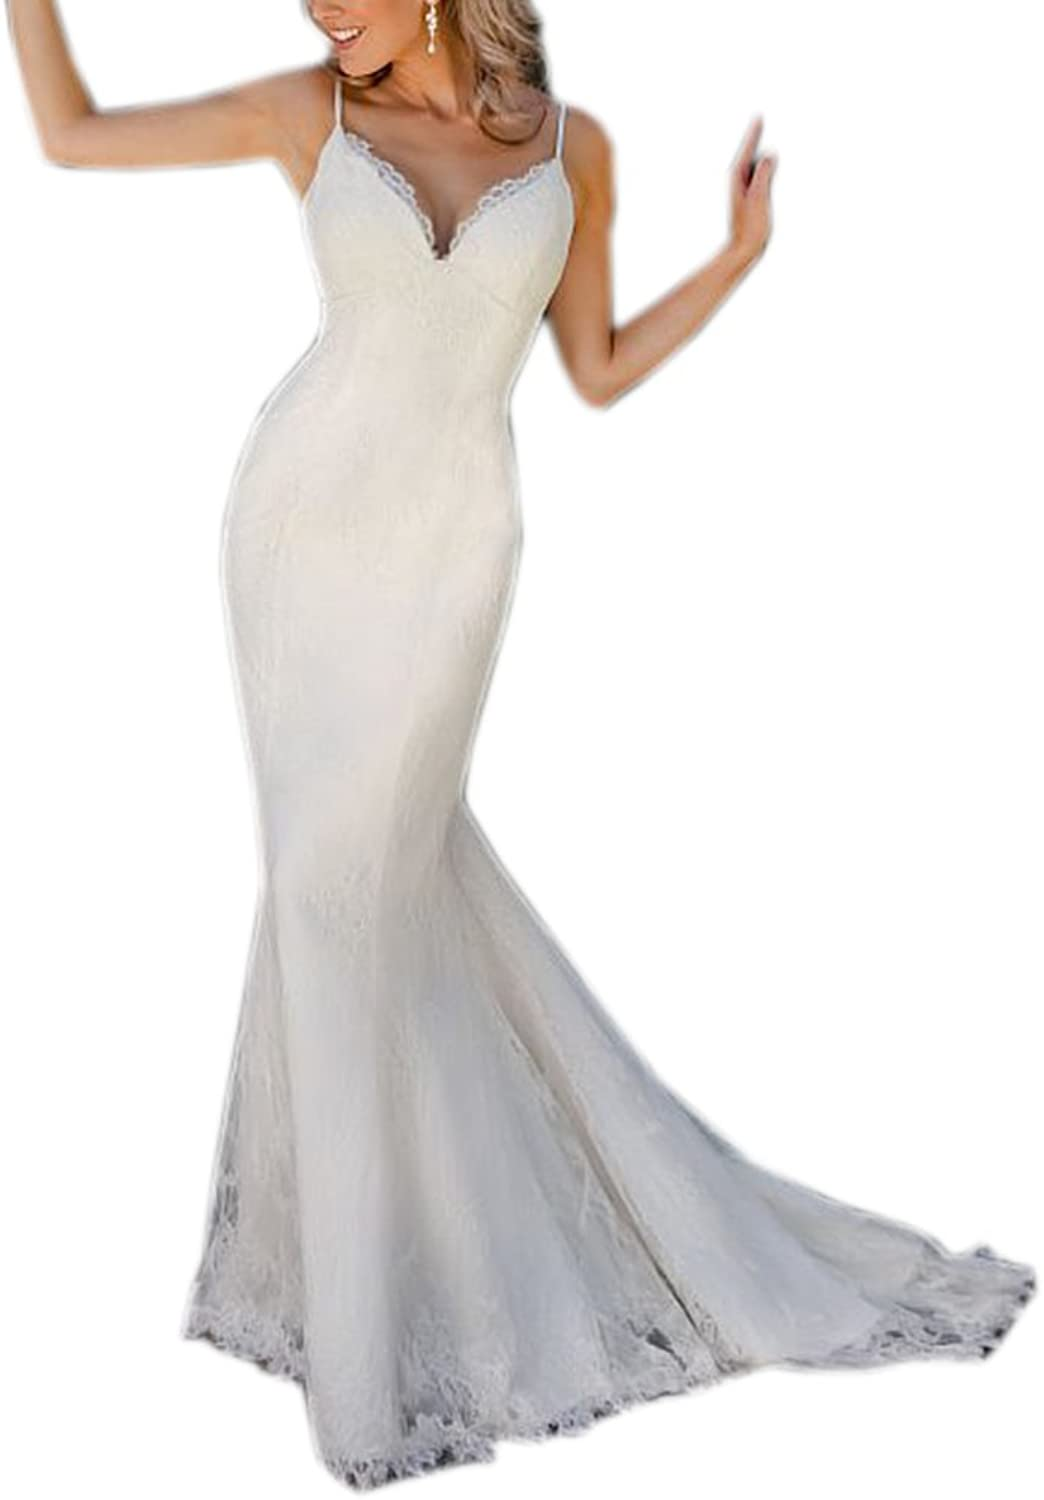 Datangep Women's VNeck Straps Backless Lace Sweep Train Beach Wedding Dress